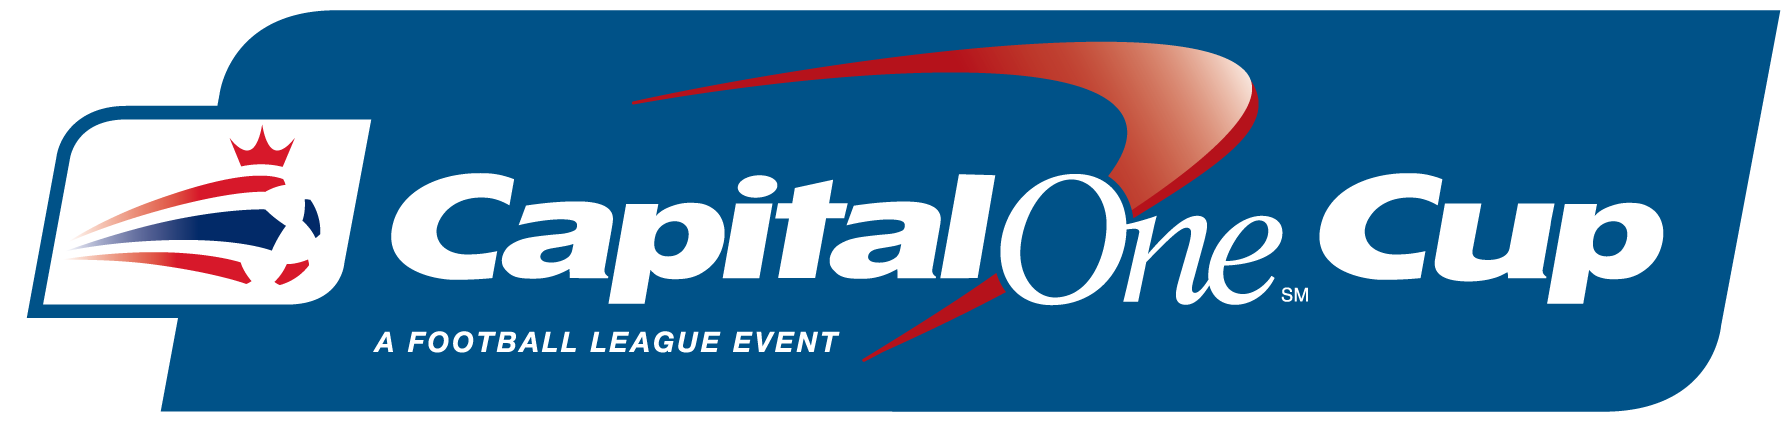 England Capital One